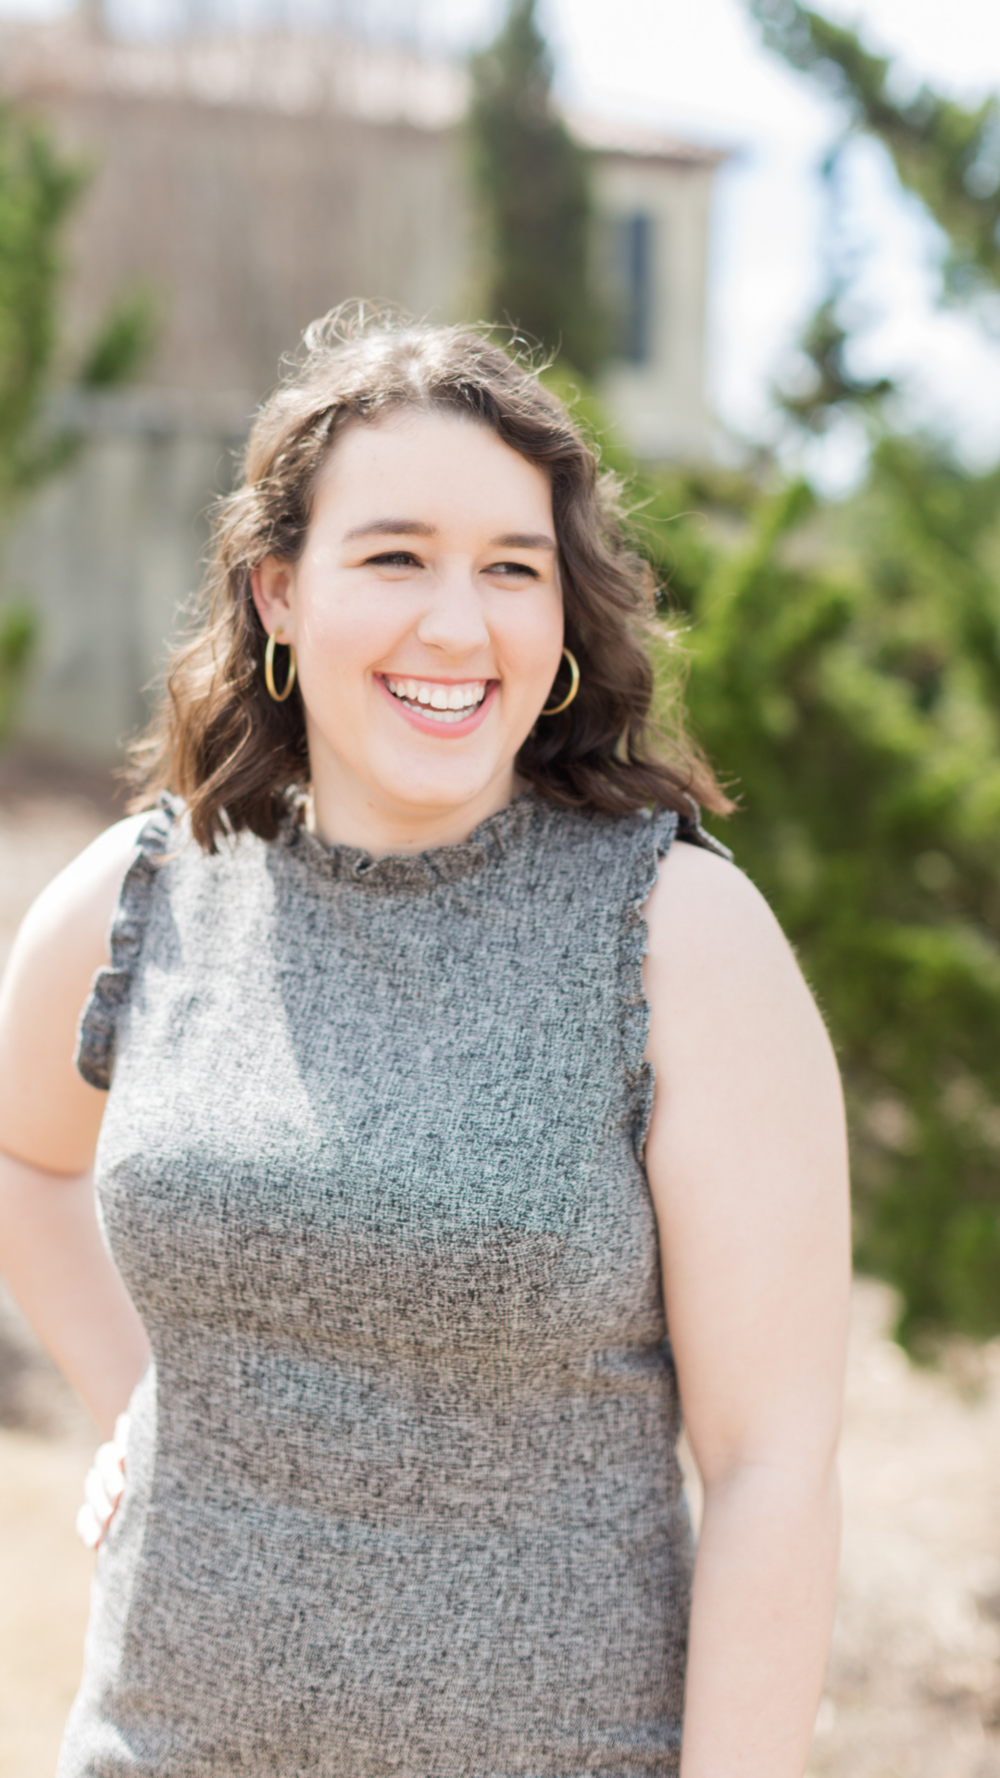 Bespoken Team | Emily Carter | Wedding and Event Planners in Greenville, SC